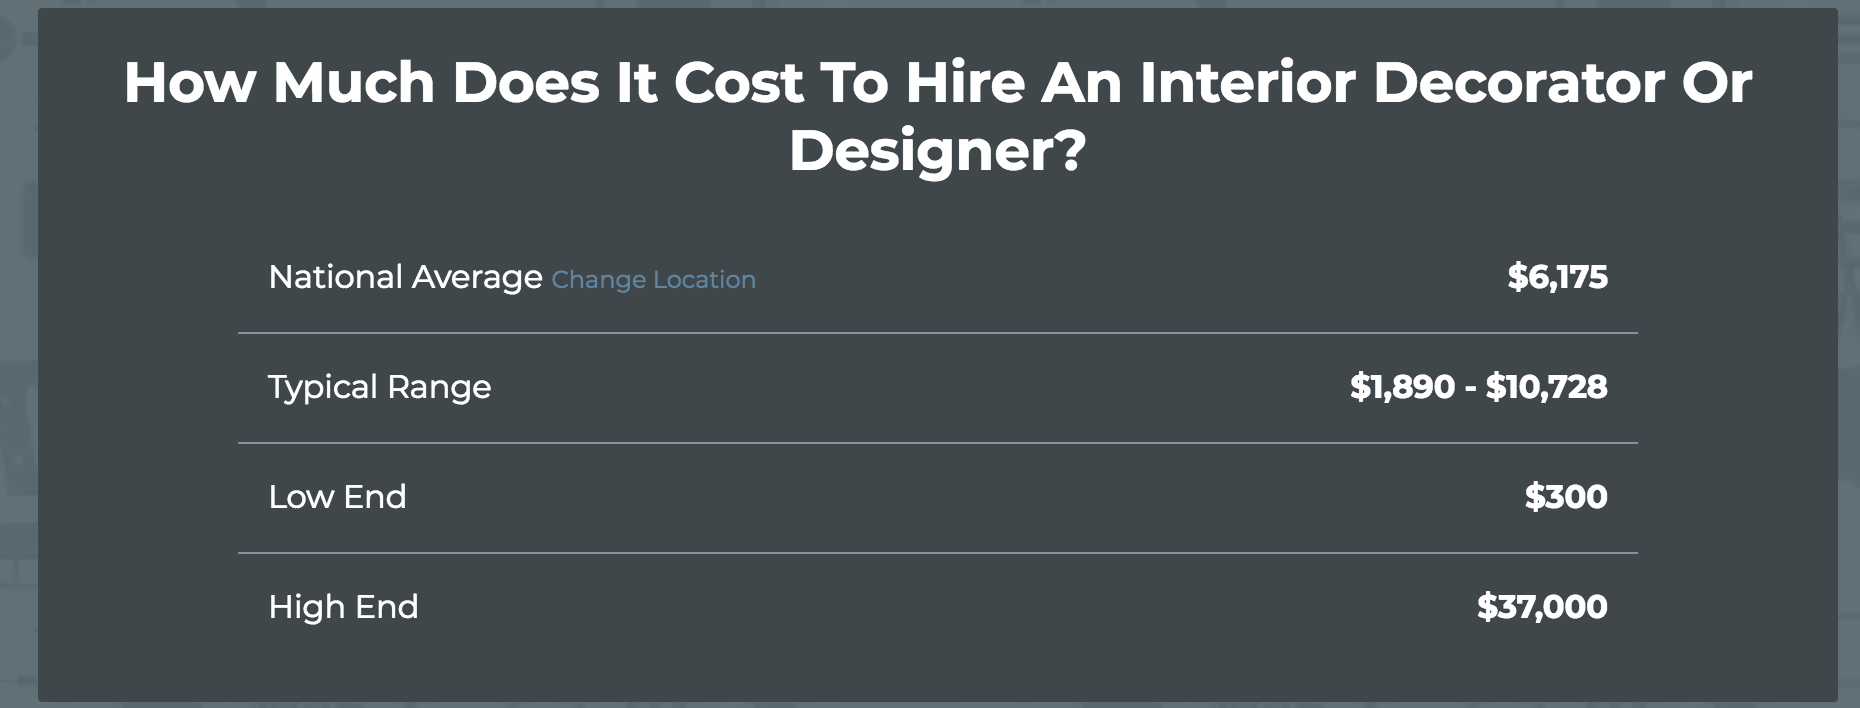 How Much Does It Cost To Hire An Interior Decorator Or Designer? Read More  At